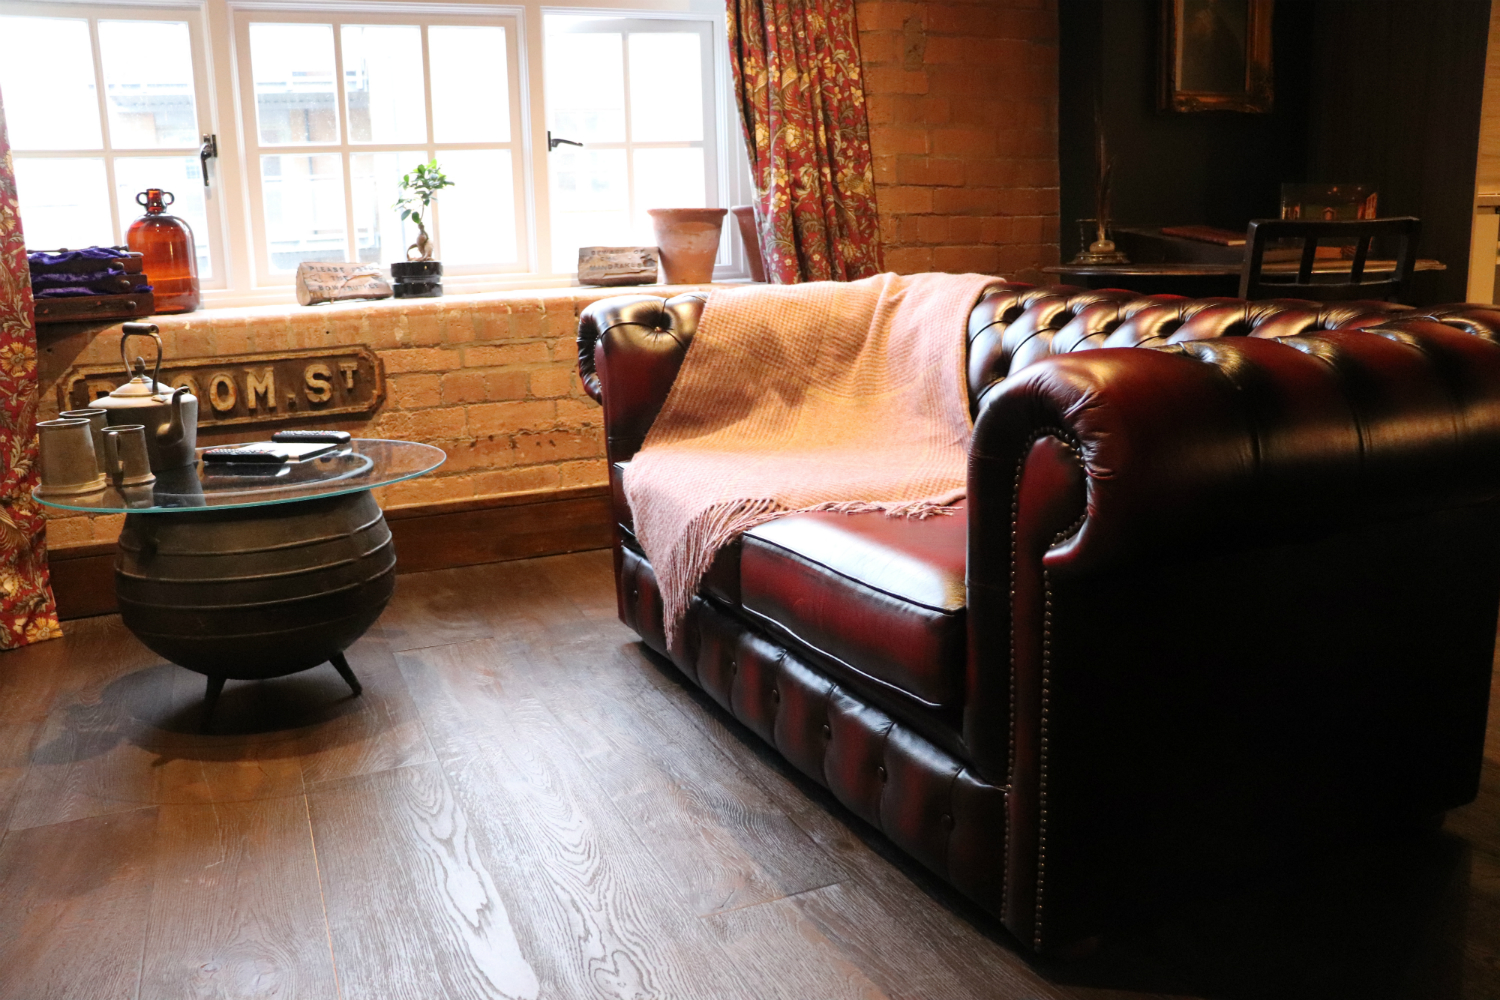 Enchantment Chamber leather couch and cauldron end table in living room